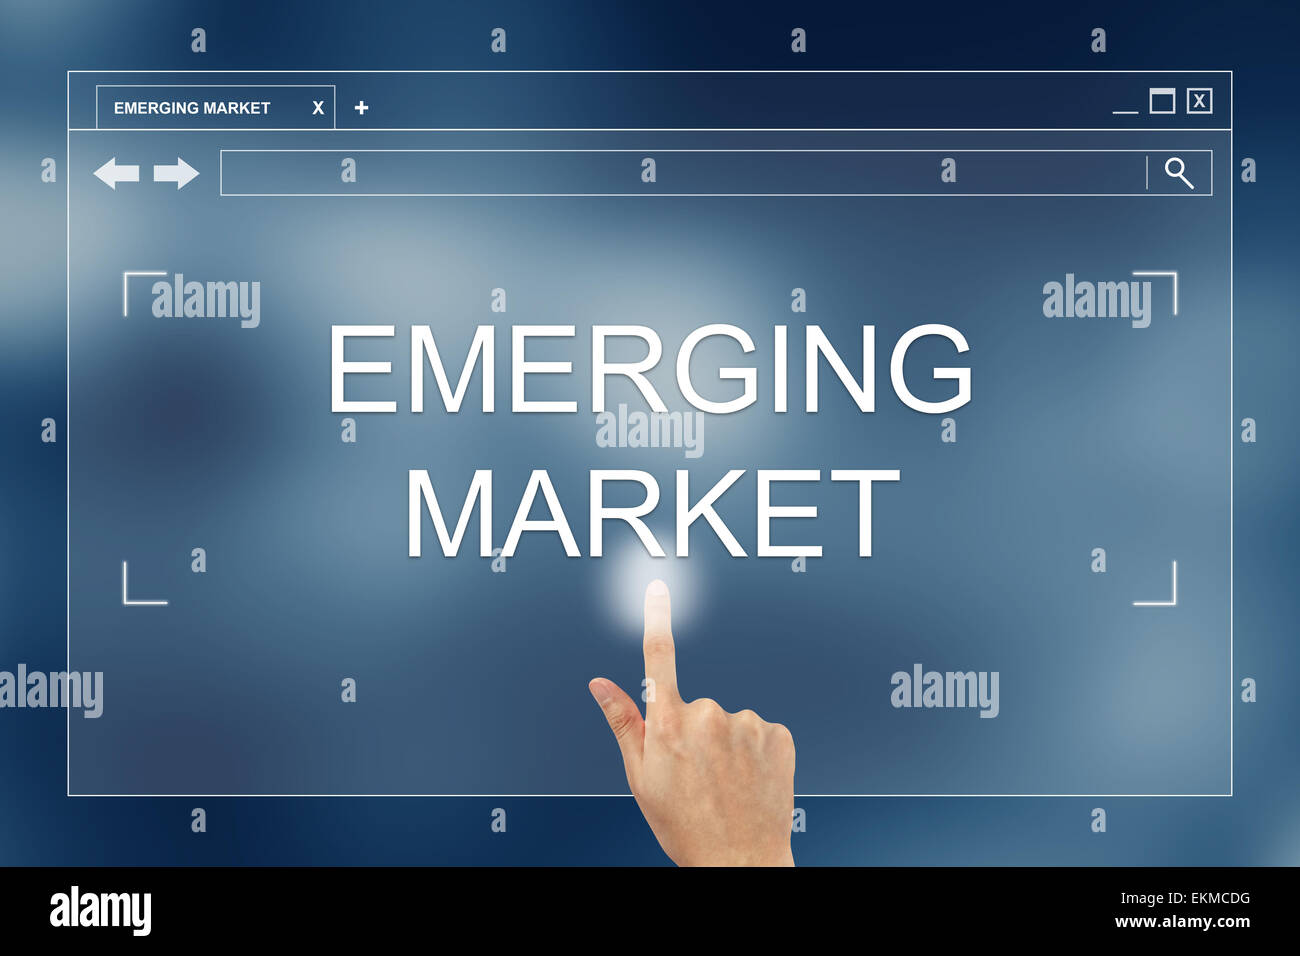 hand press on emerging market button on webpage Stock Photo